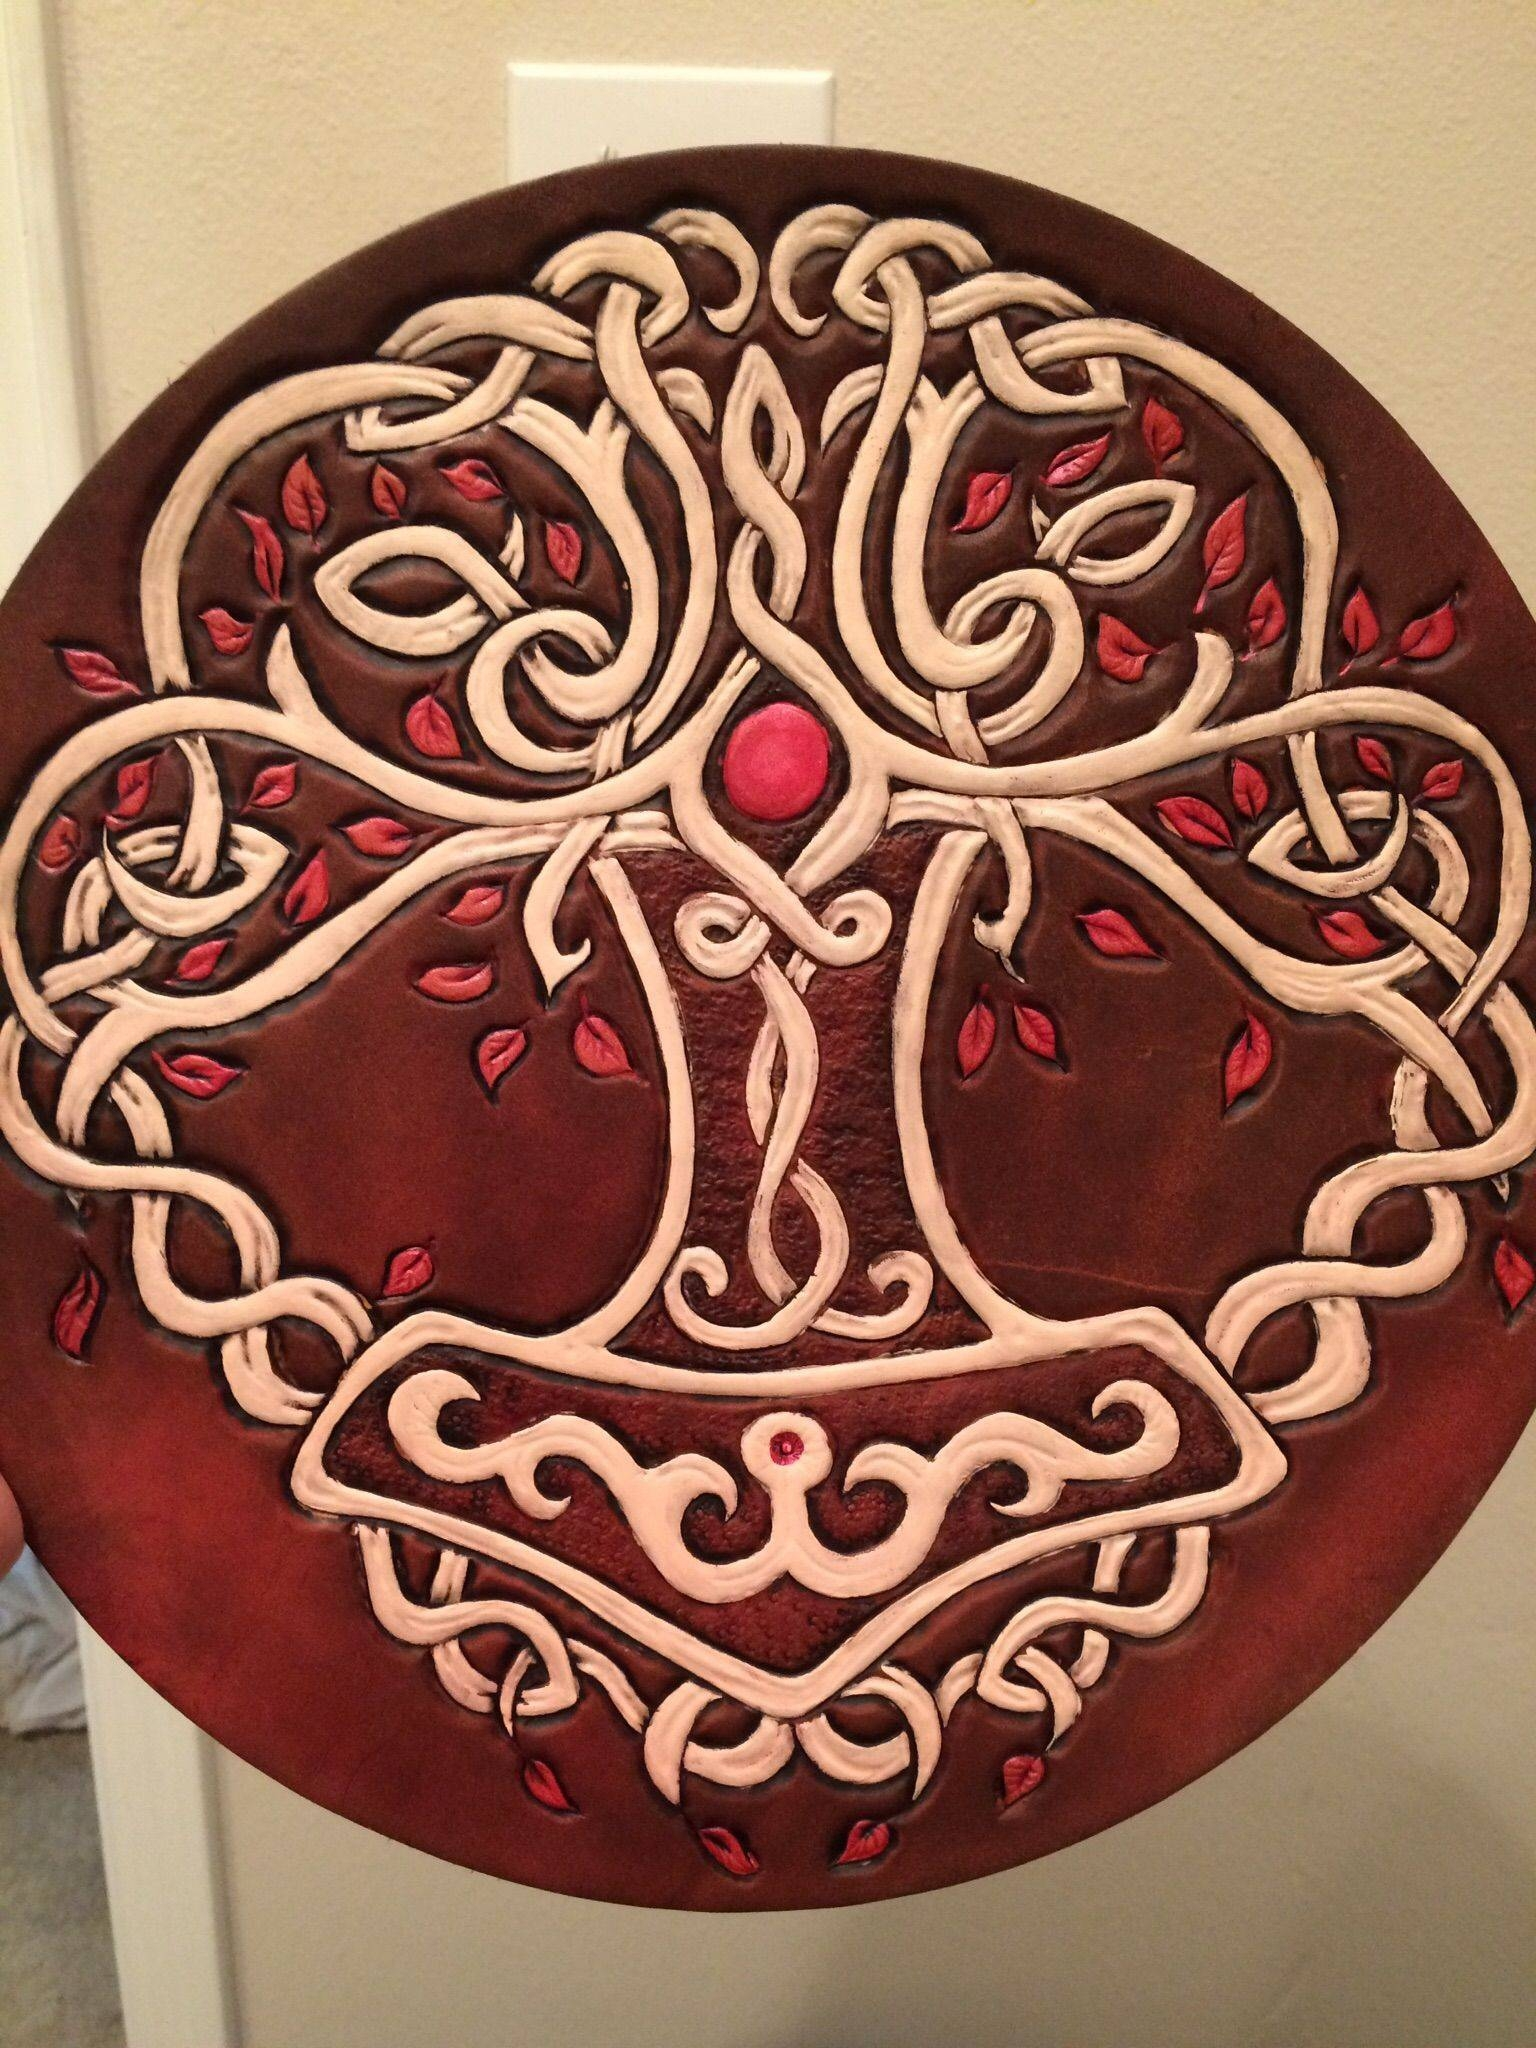 Buy A Hand Crafted Celtic/viking/norse Tree Of Life Trivet, Made With Regard To Most Current Celtic Tree Of Life Wall Art (View 6 of 30)